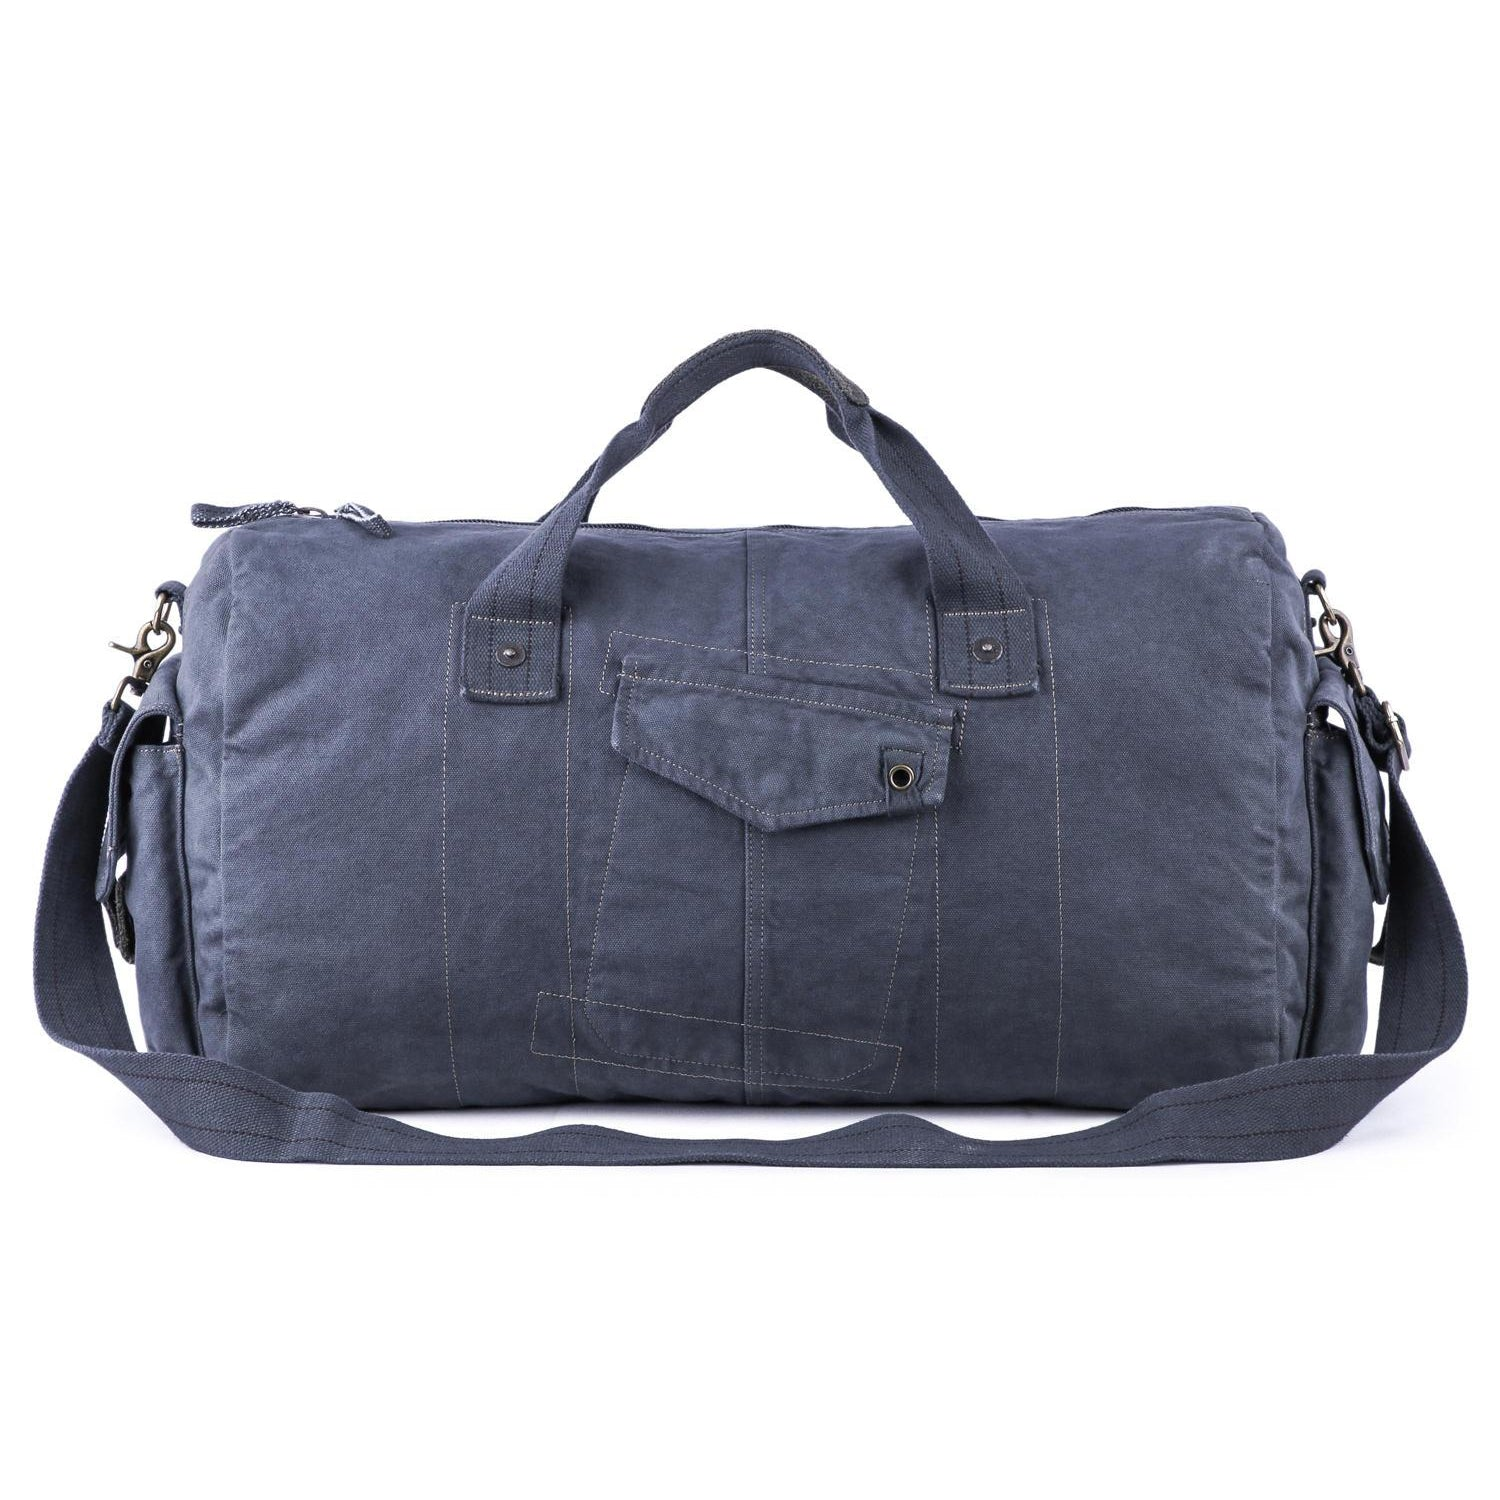 Canvas Duffel Bag  60404 - Gootium 2dd85a94d1a